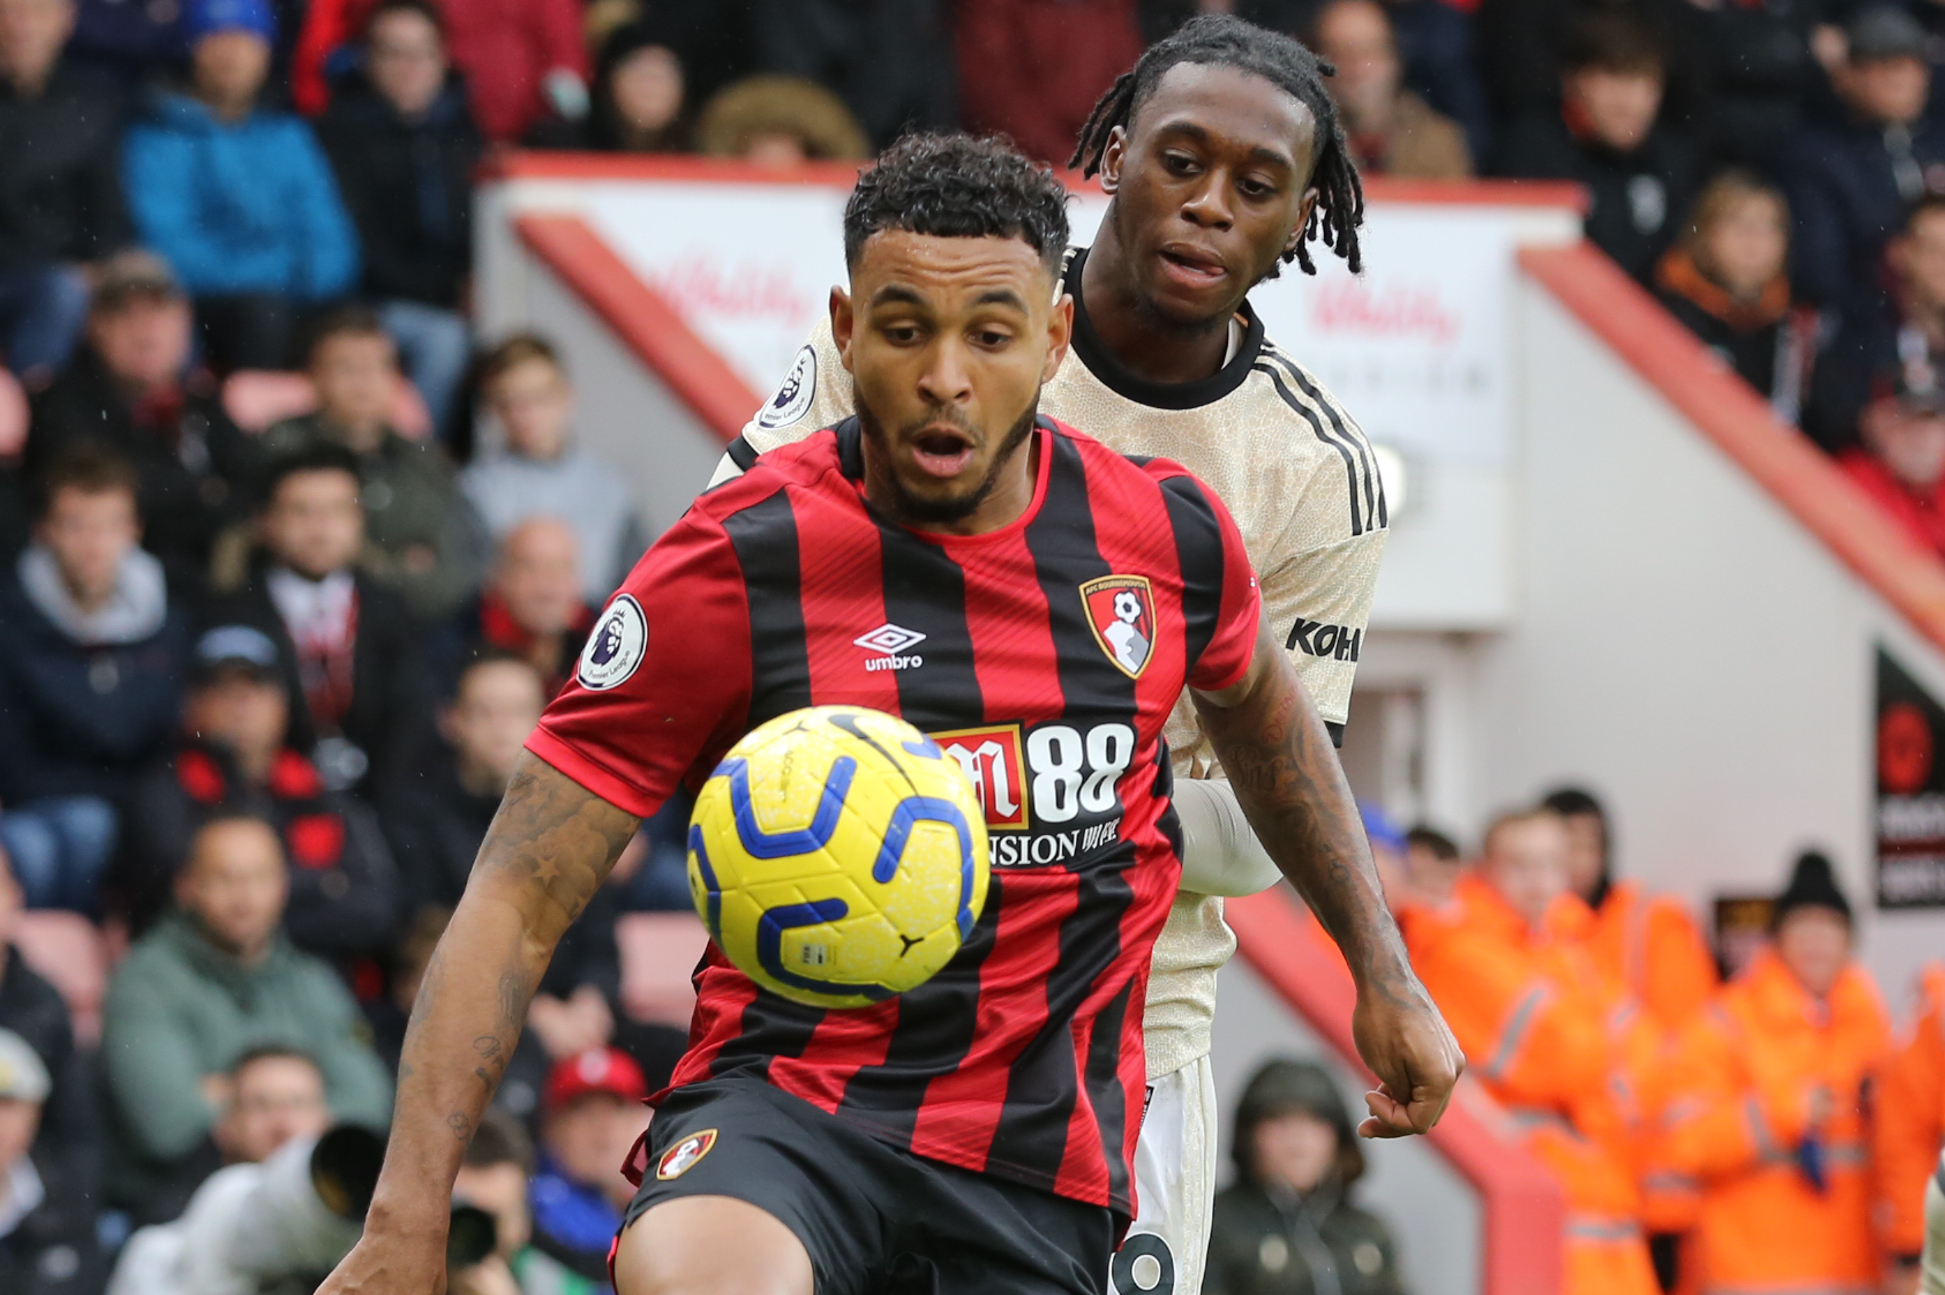 Frontman Joshua King believes 'sky is the limit' if AFC Bournemouth beat Newcastle